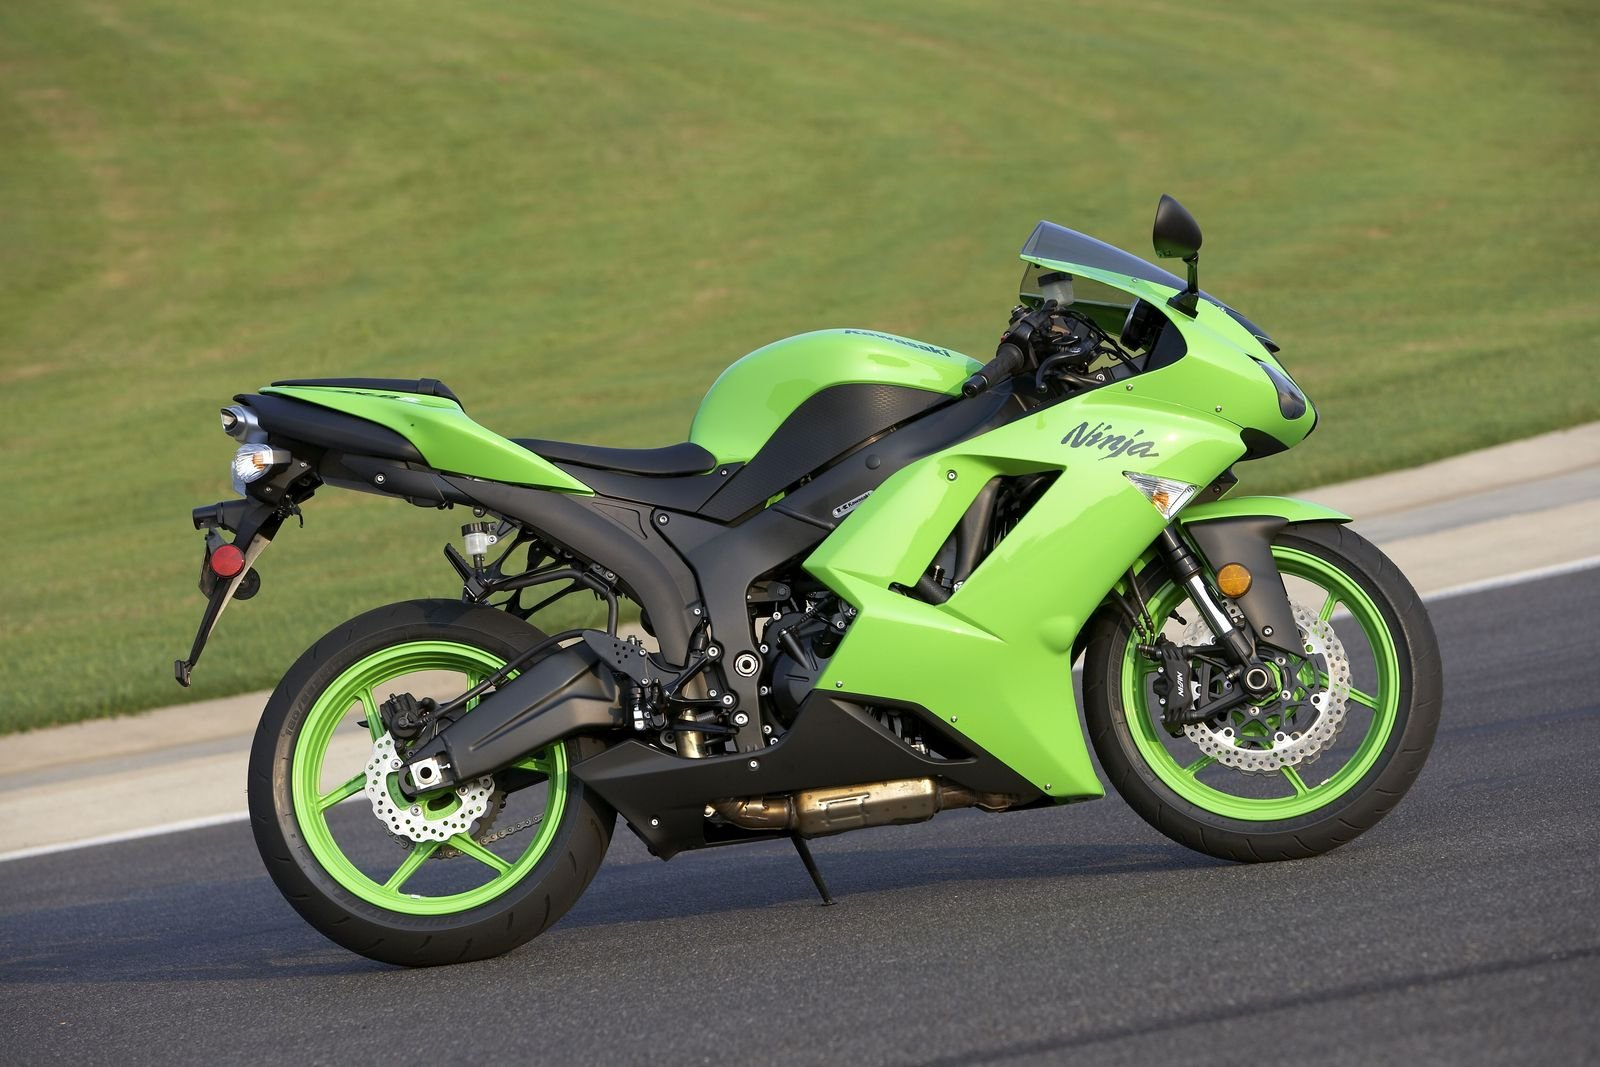 2008 kawasaki ninja zx 6r picture 220729 motorcycle review top speed. Black Bedroom Furniture Sets. Home Design Ideas